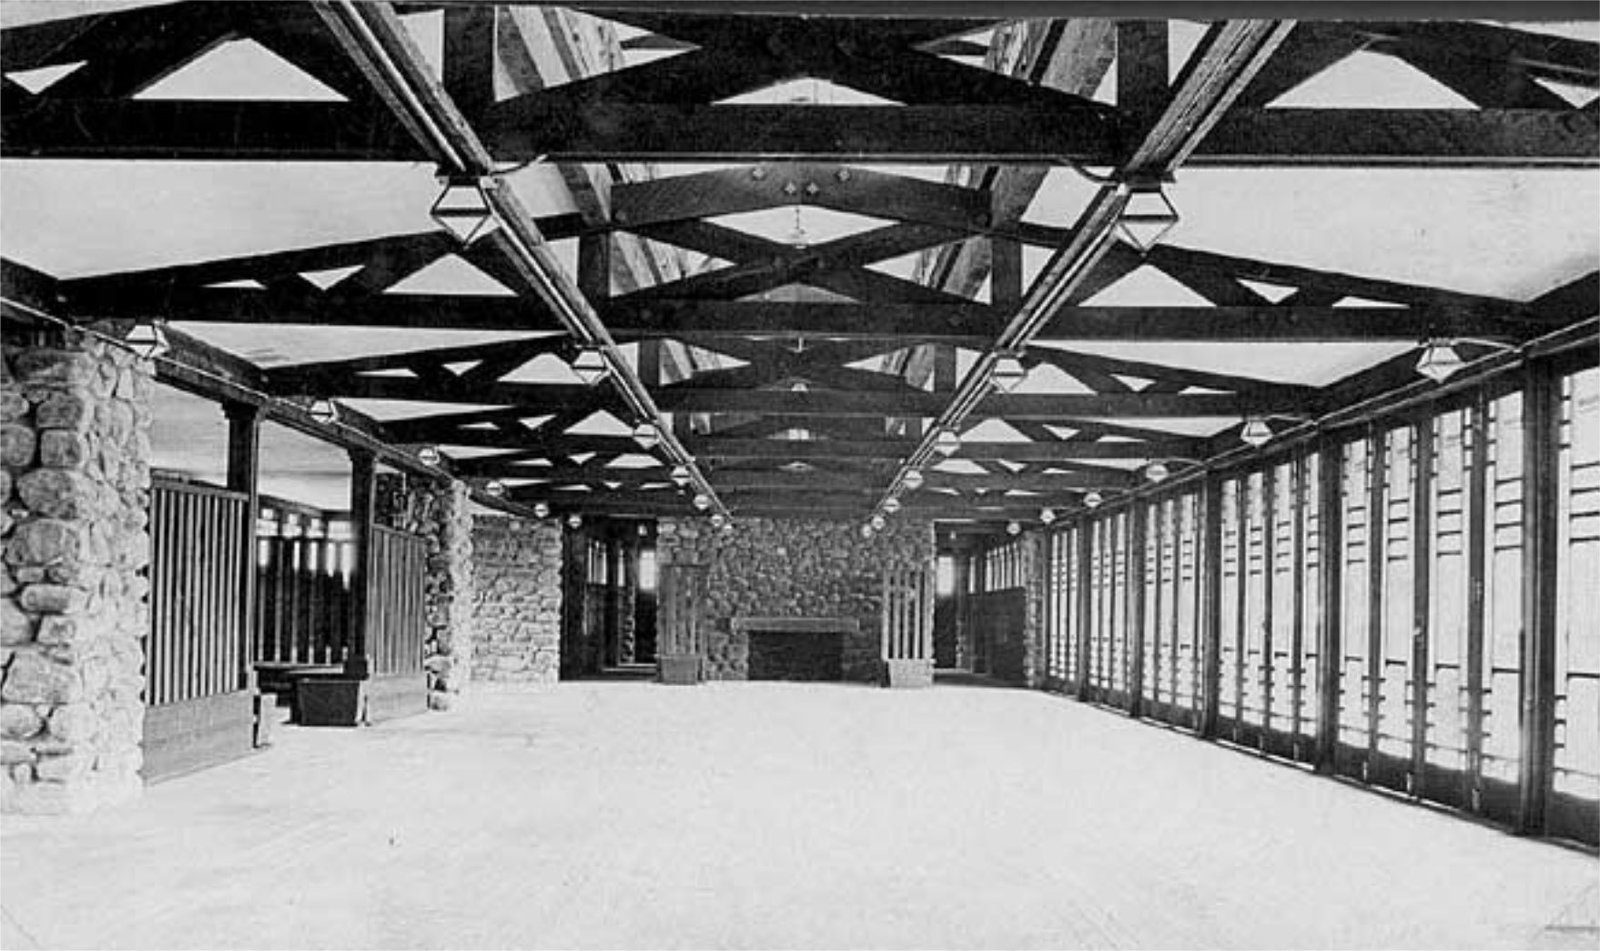 Photo 1 of 5 in Demolished Frank Lloyd Wright Structure in Banff May Be Rebuilt